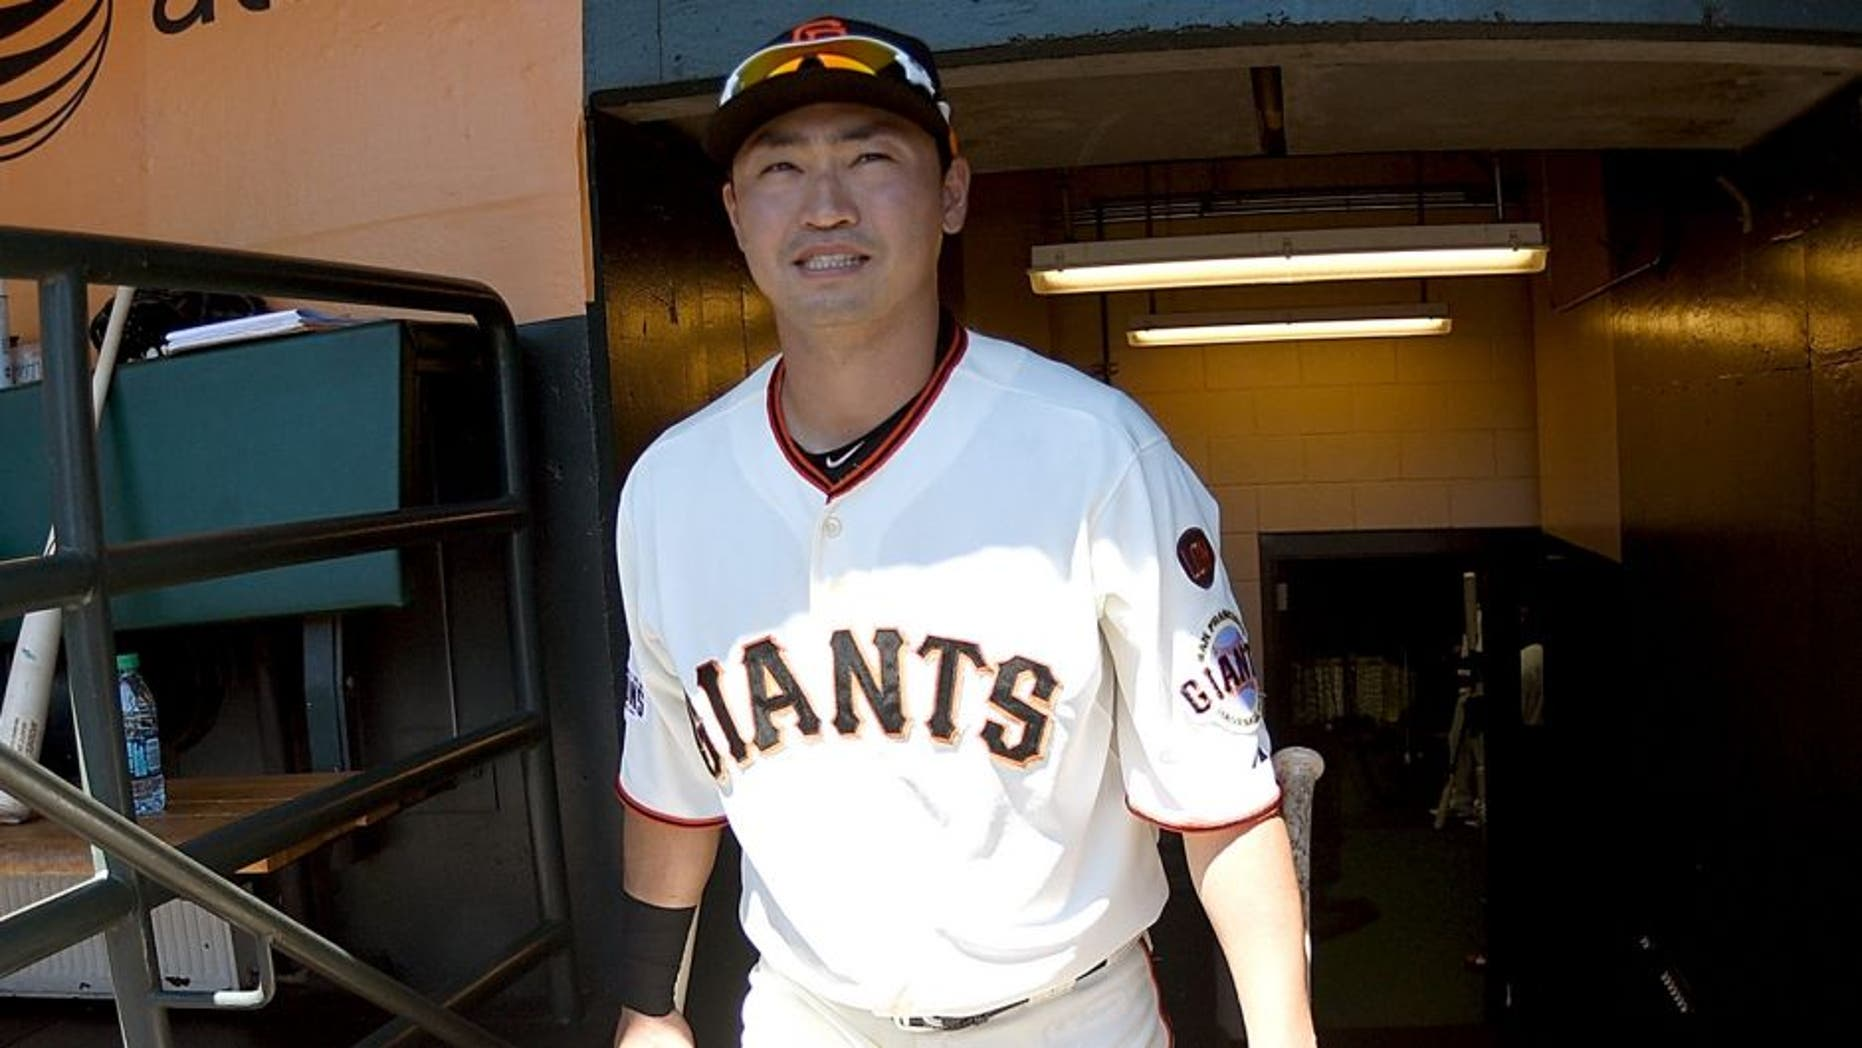 SAN FRANCISCO, CA - AUGUST 12: Nori Aoki #23 of the San Francisco Giants walks up the stairs into the dugout prior to the start of the game against the Houston Astros at AT&T Park on August 12, 2015 in San Francisco, California. (Photo by Thearon W. Henderson/Getty Images)